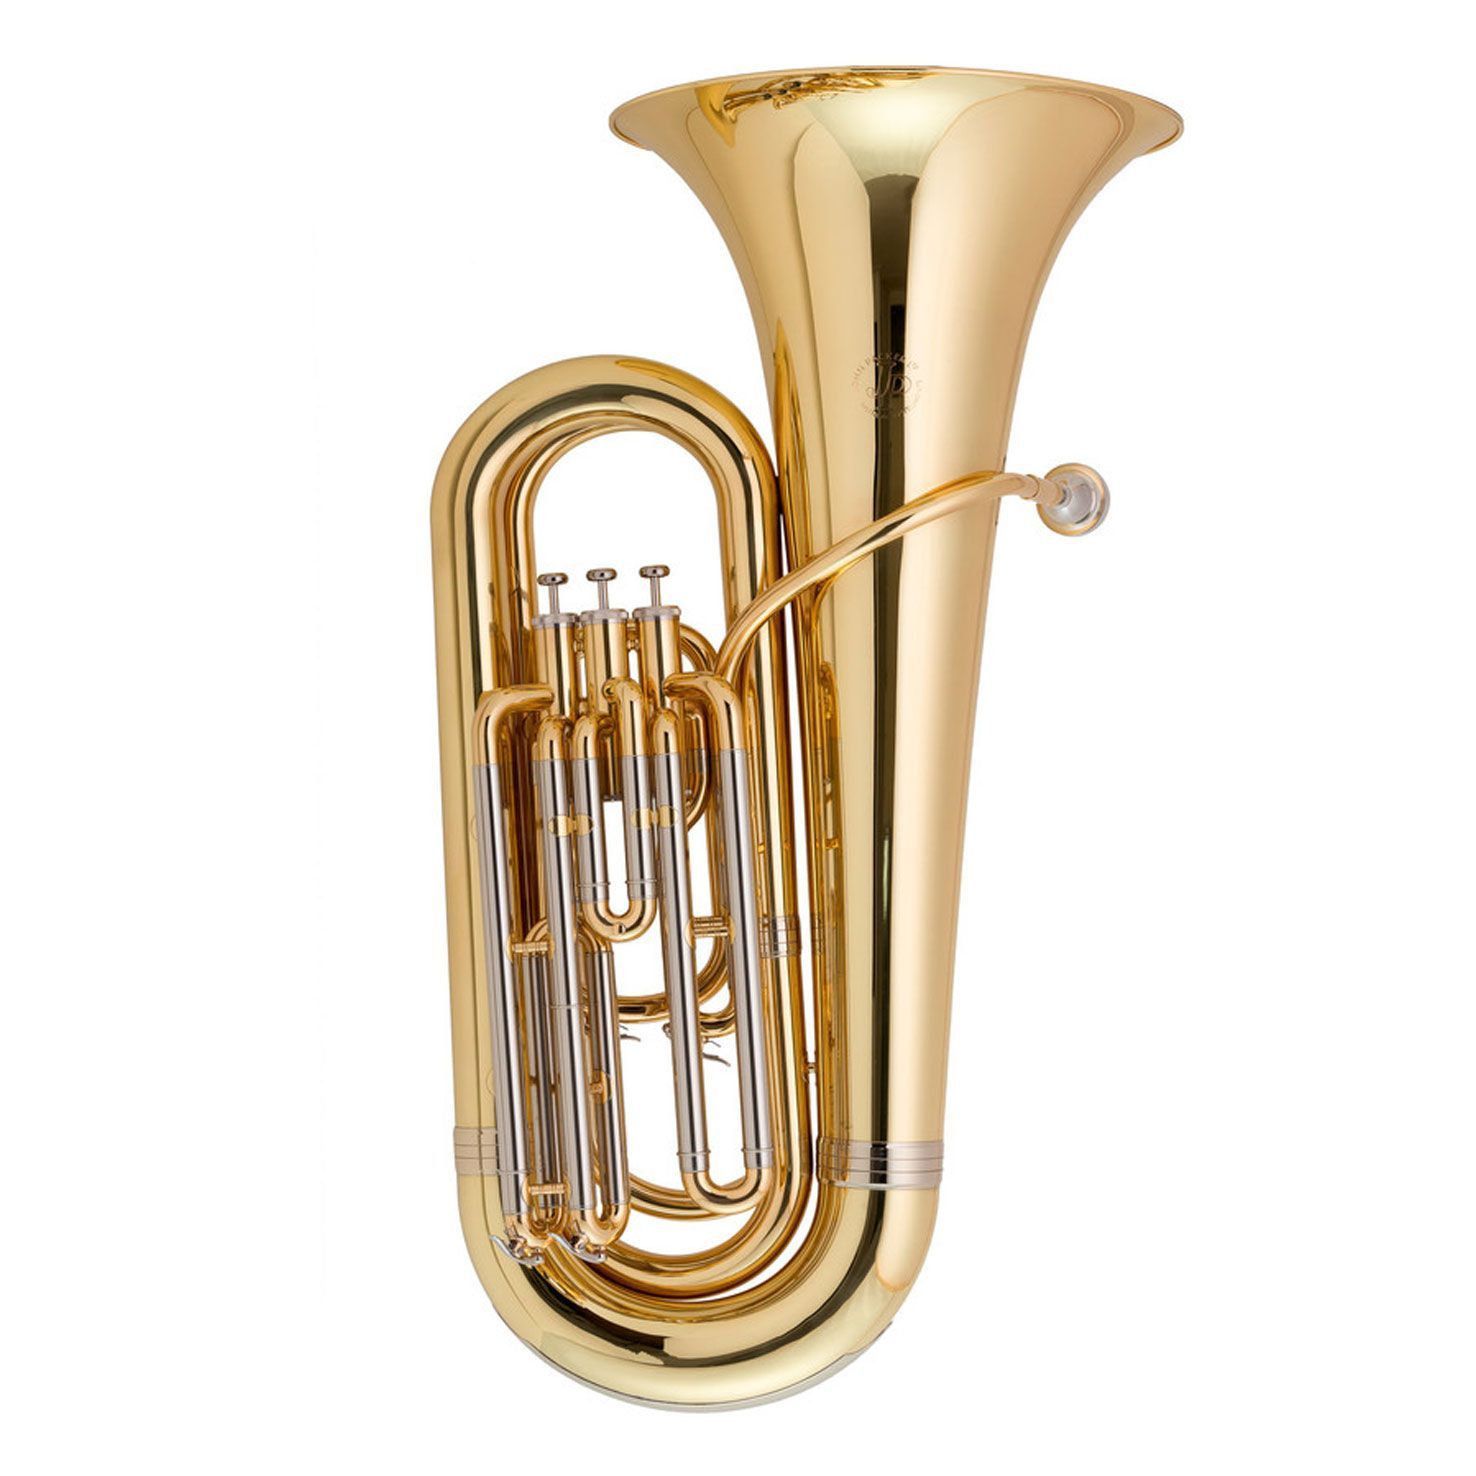 JP078 Bb Tuba - mini 3 valve